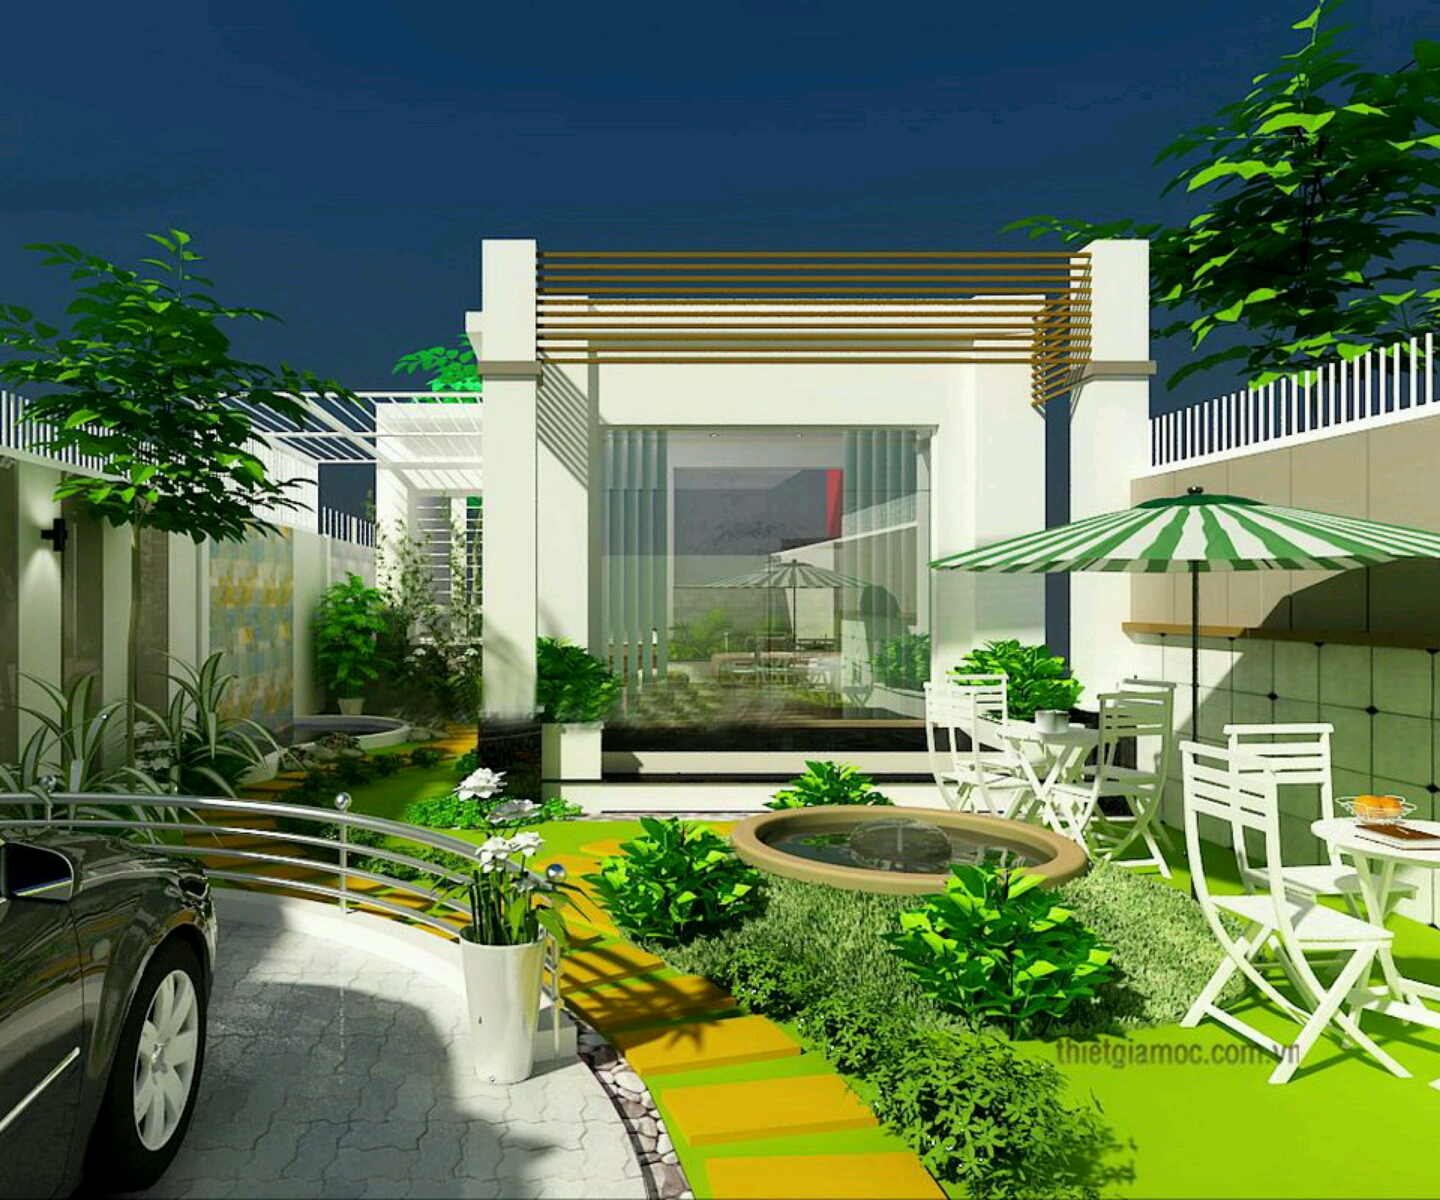 Modern homes beautiful garden designs ideas. | New home ...